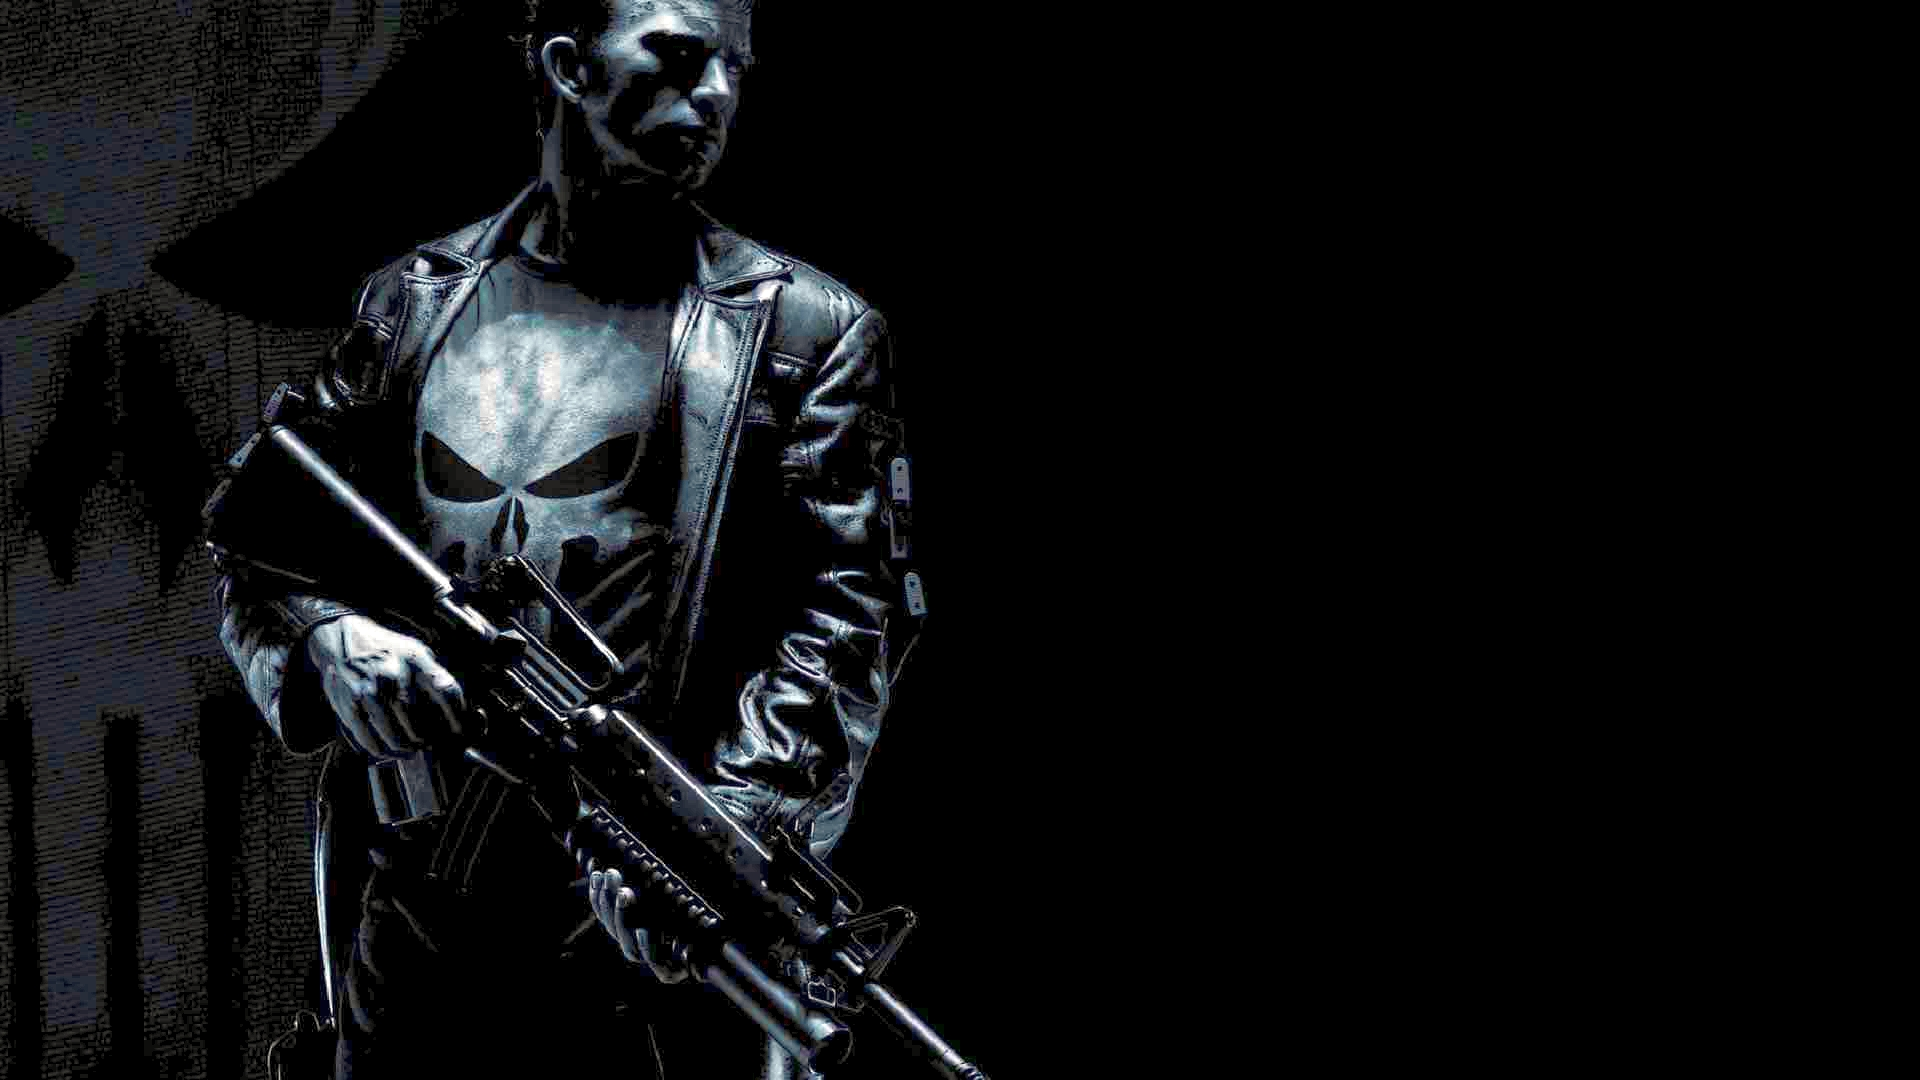 Collection of The Punisher Backgrounds The Punisher HQFX 1920x1080